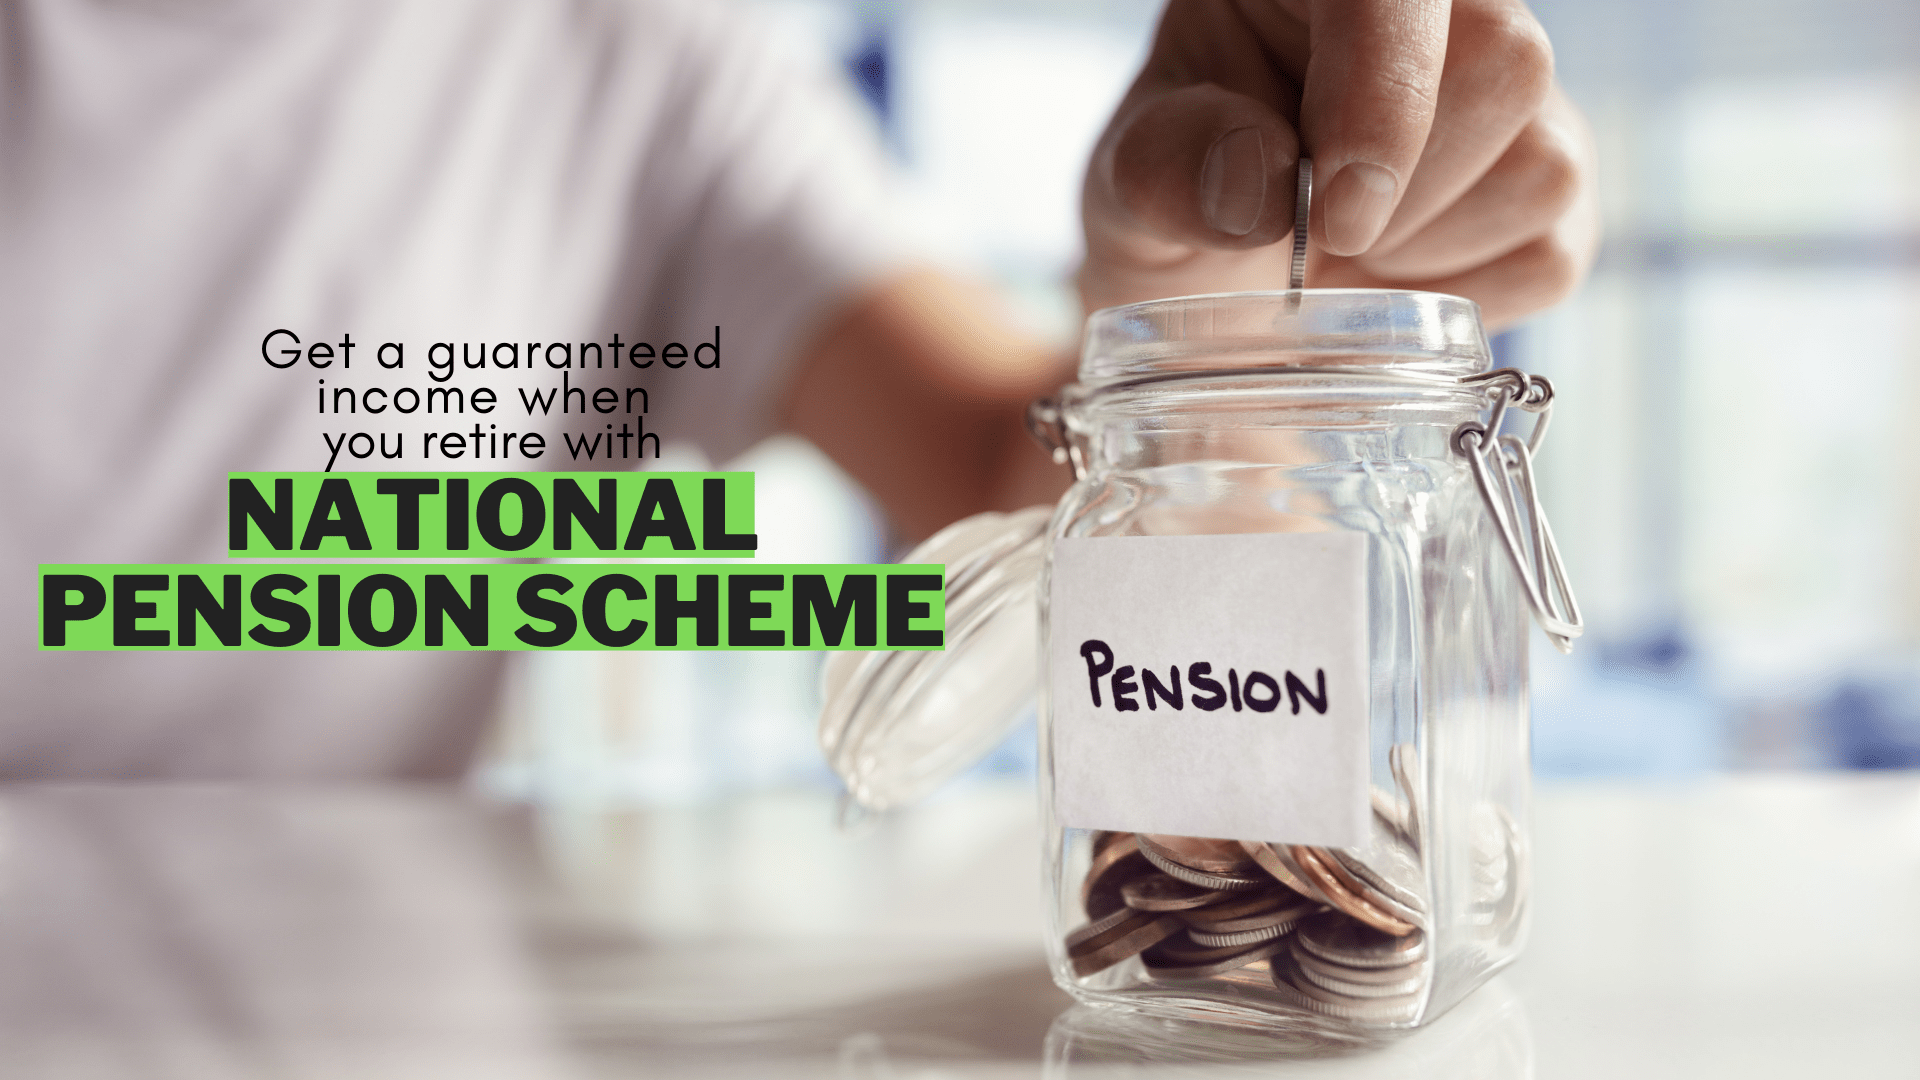 What is National Pension Scheme - Benefits, Tax Saving Investment and Plans